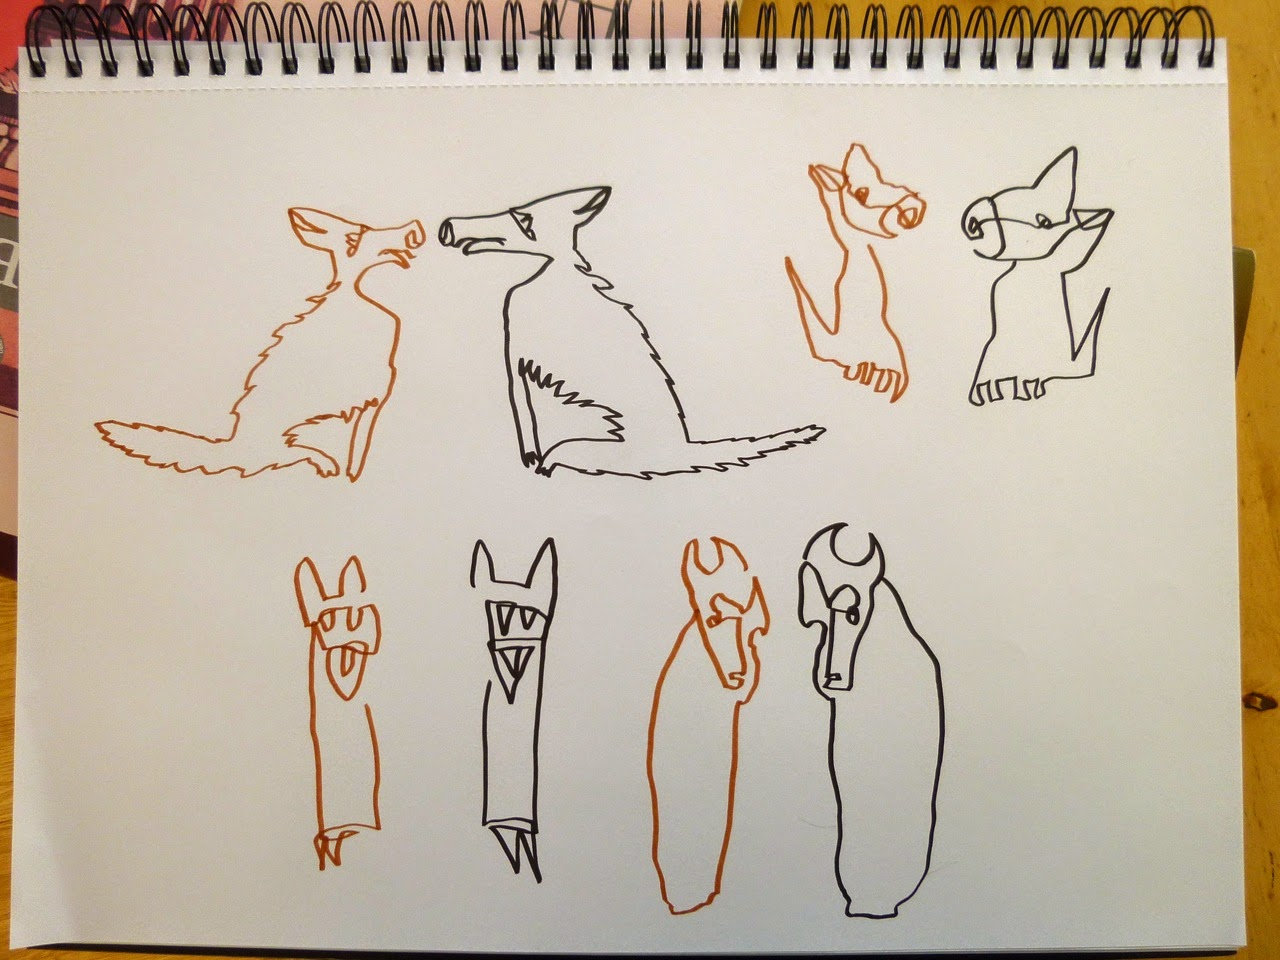 Animals drawn side-by-side simultaneously with left and right hand